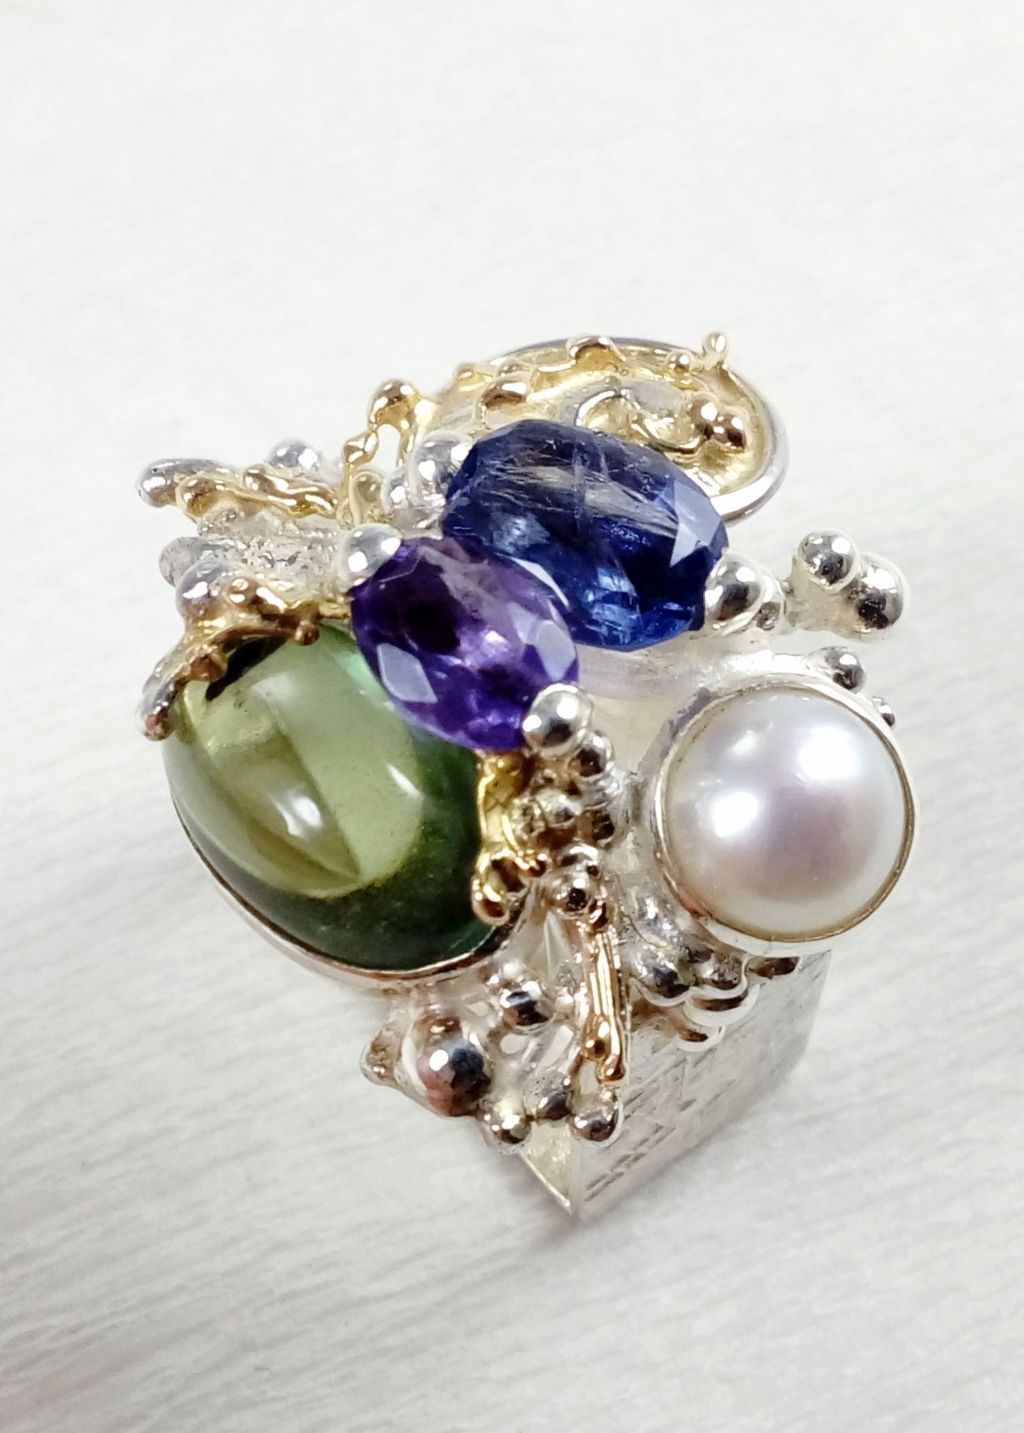 gregory pyra piro, square ring #4821, sterling silver and 14 karat gold ring, ring with amethyst, fluorite, iolite and pearl, one of a kind handcrafted ring, original handcrafted jewellery